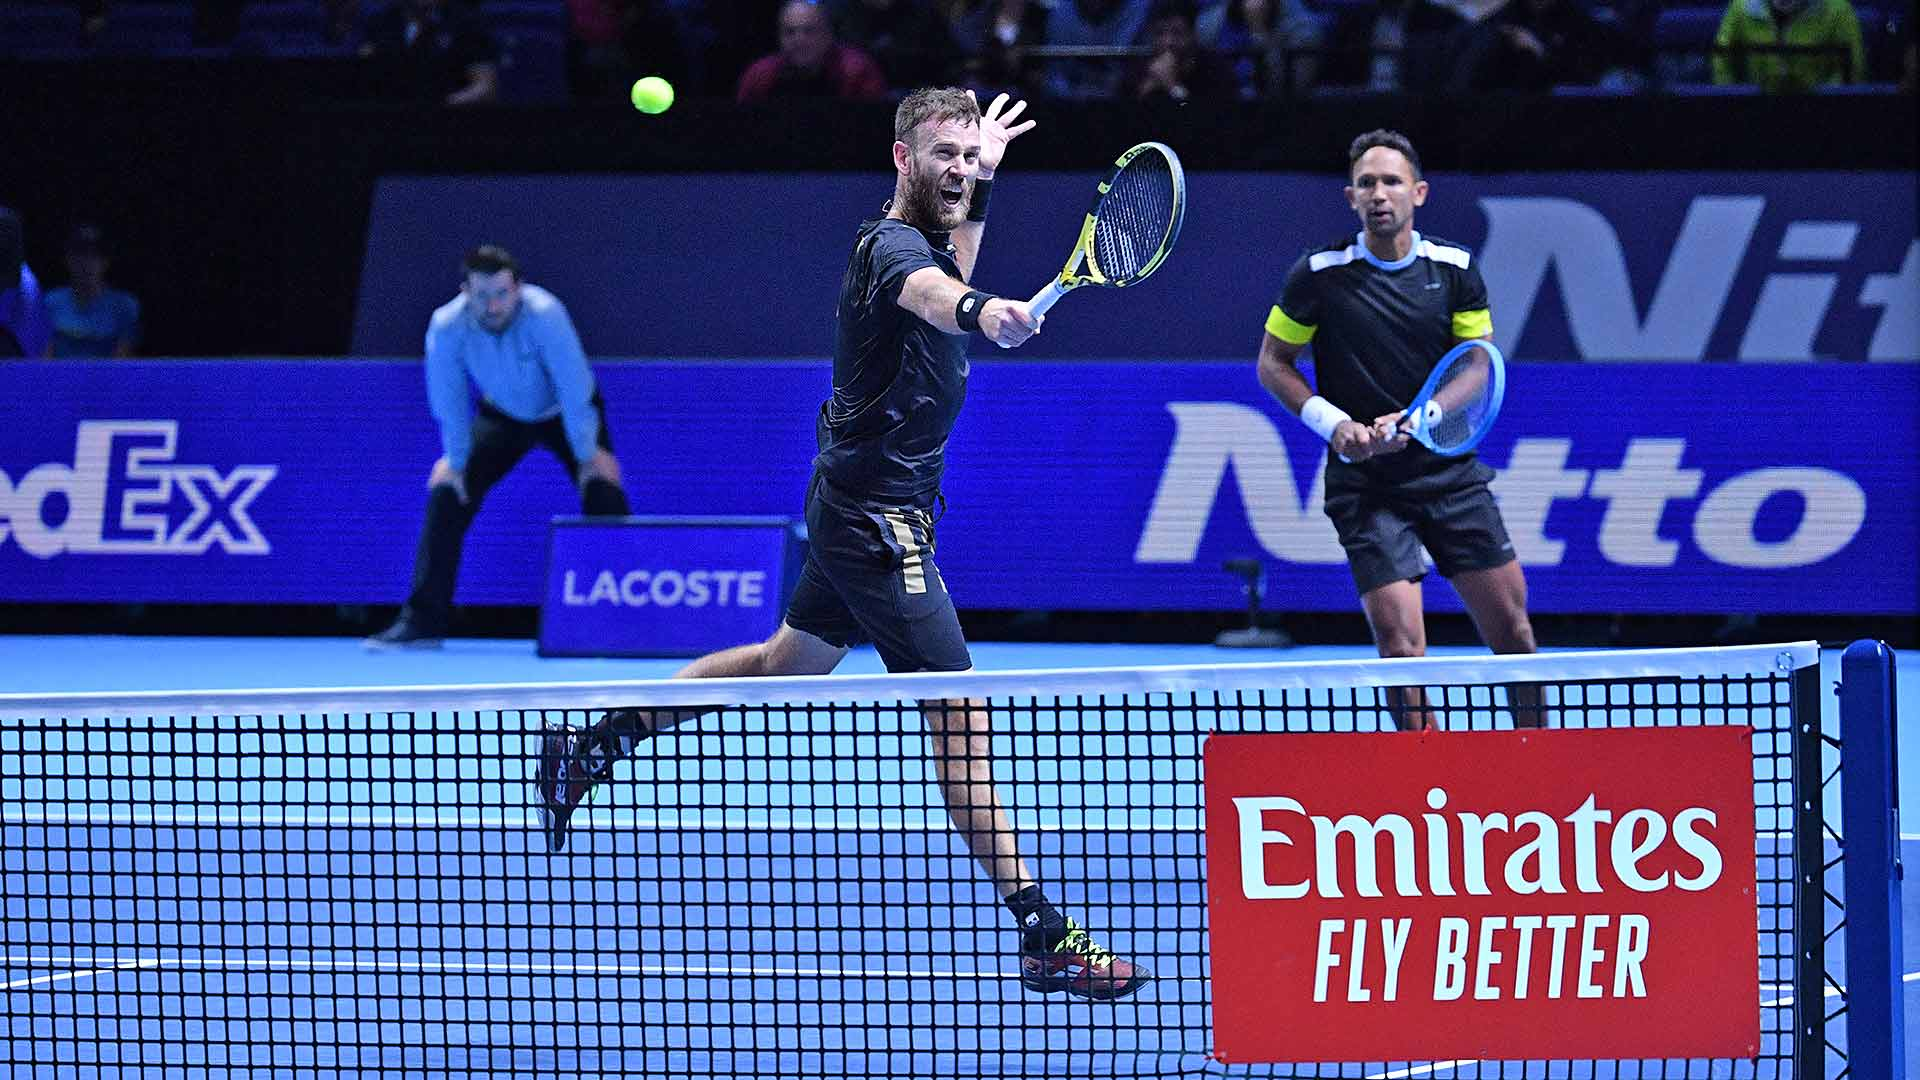 Michael Venus and Raven Klaasen improve to 2-0 in Group Jonas Bjorkman at the Nitto ATP Finals.